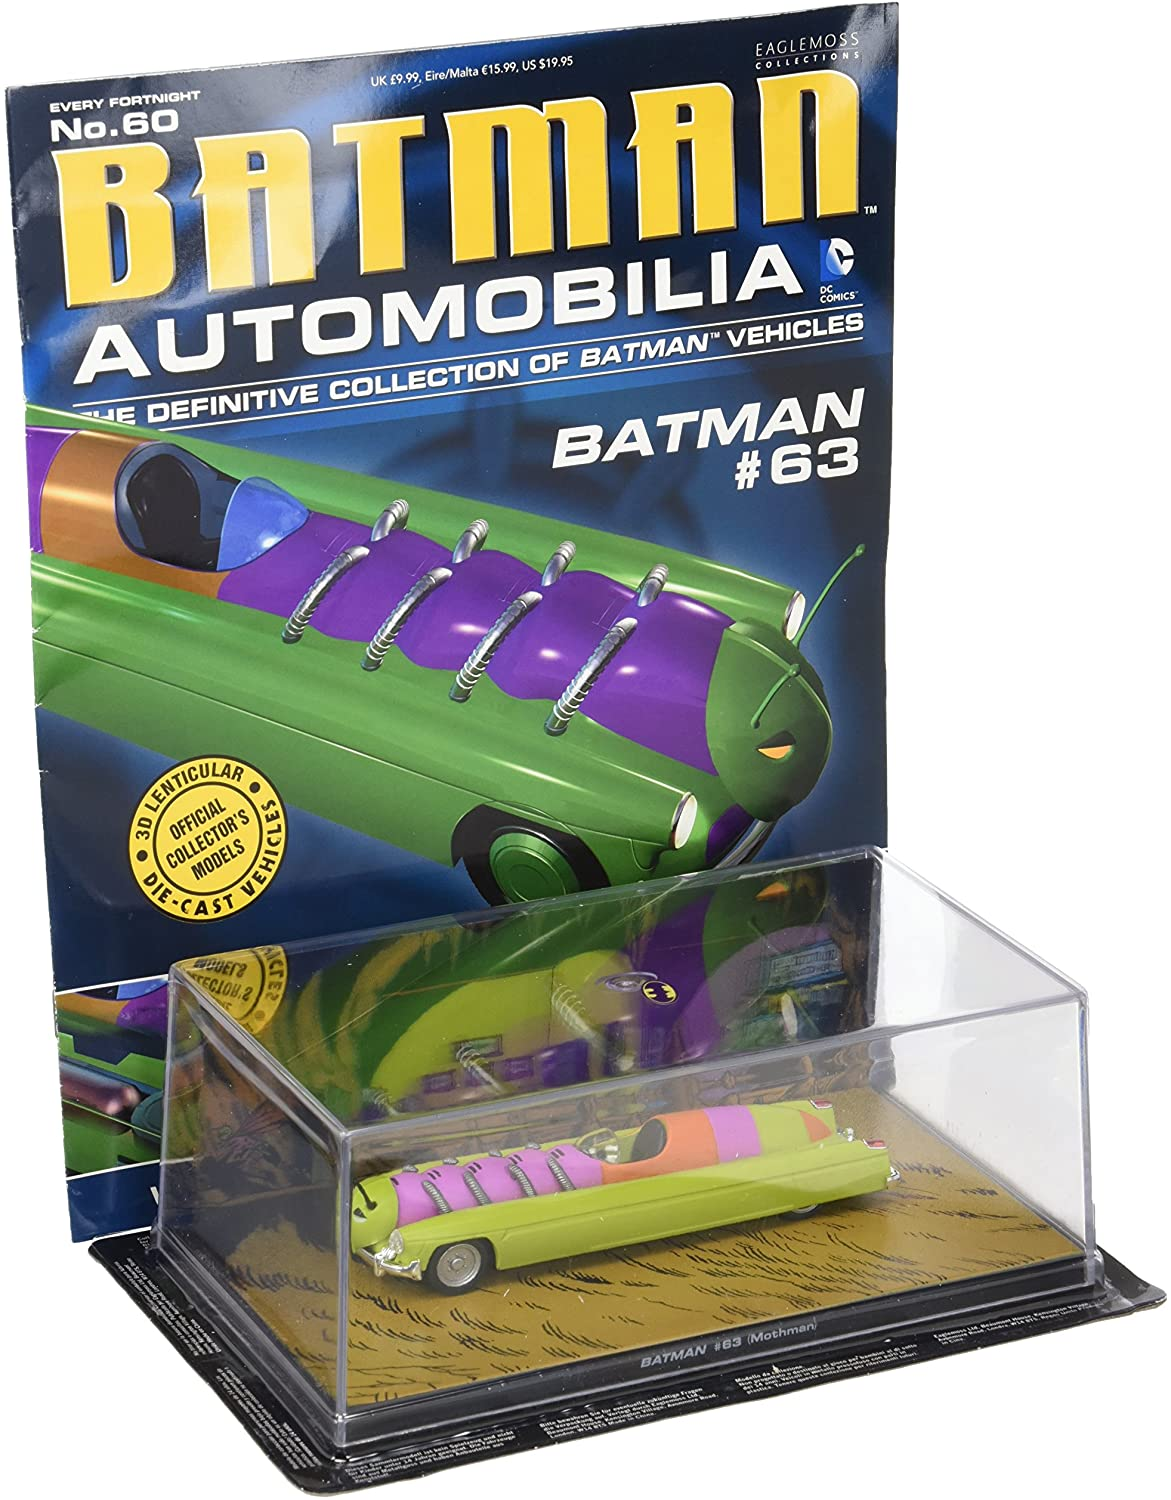 DC Batman Automobilia Magazine #60 - Batman #63 Batmobile